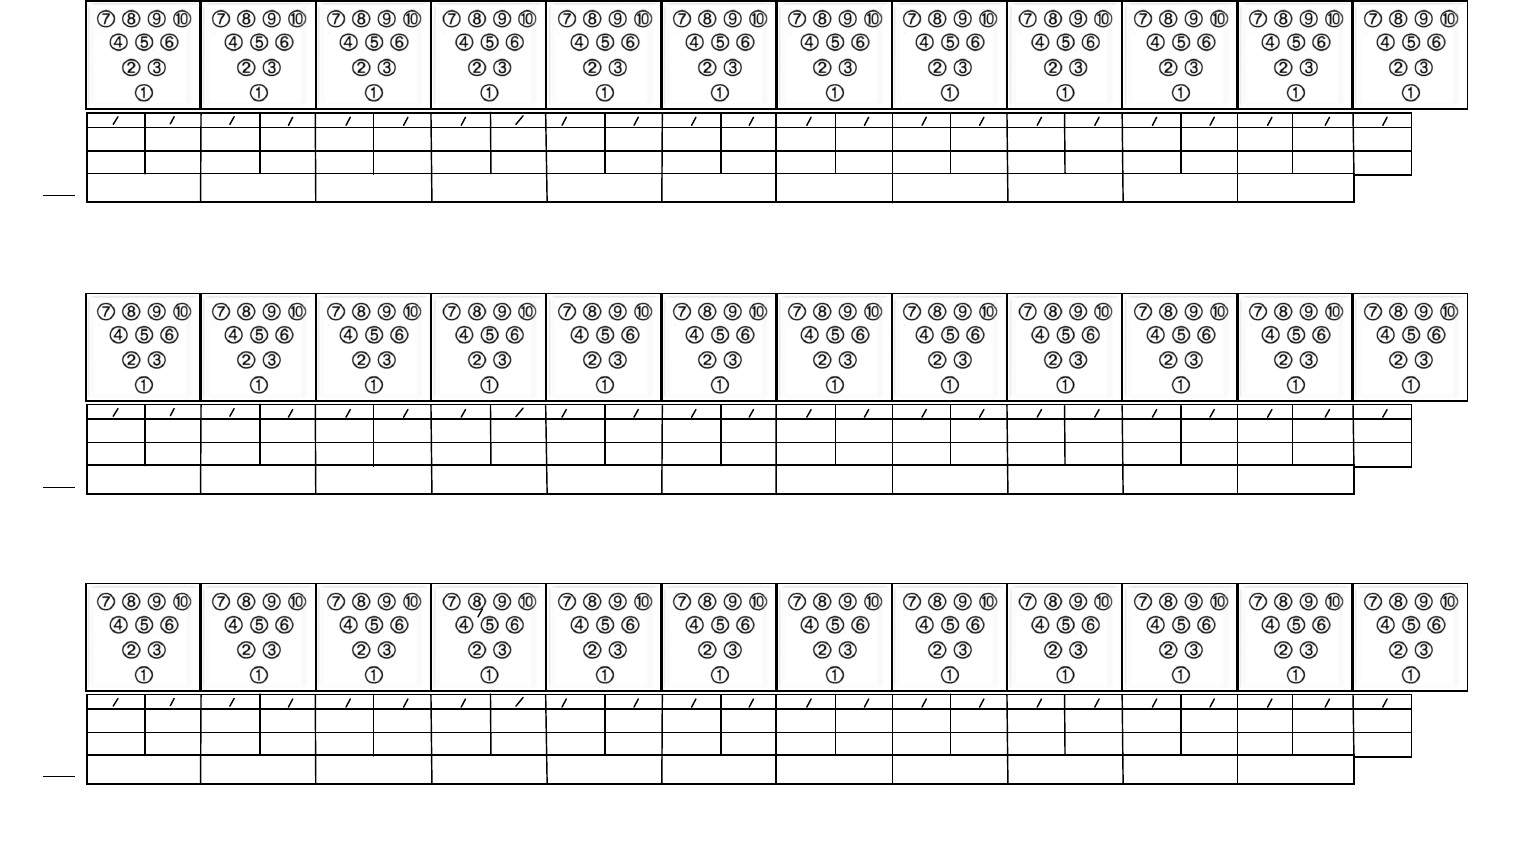 Bowling Score Sheet Excel Download Printable Bowling Score Sheet with Pins